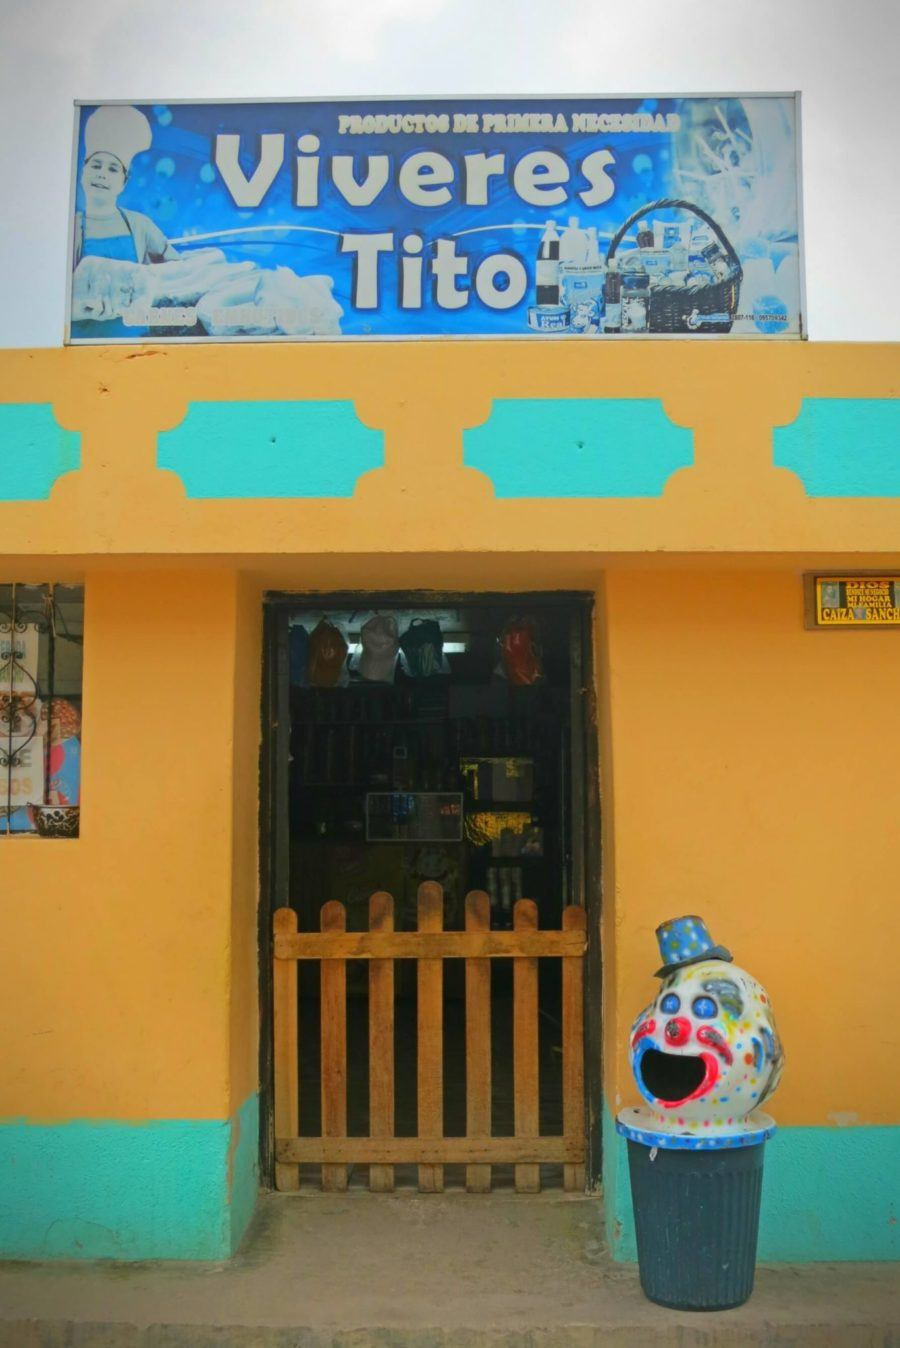 Creepy clown trash can in Ecuador! This is the tip of the iceberg when it comes to things nobody told us about backpacking in Ecuador...